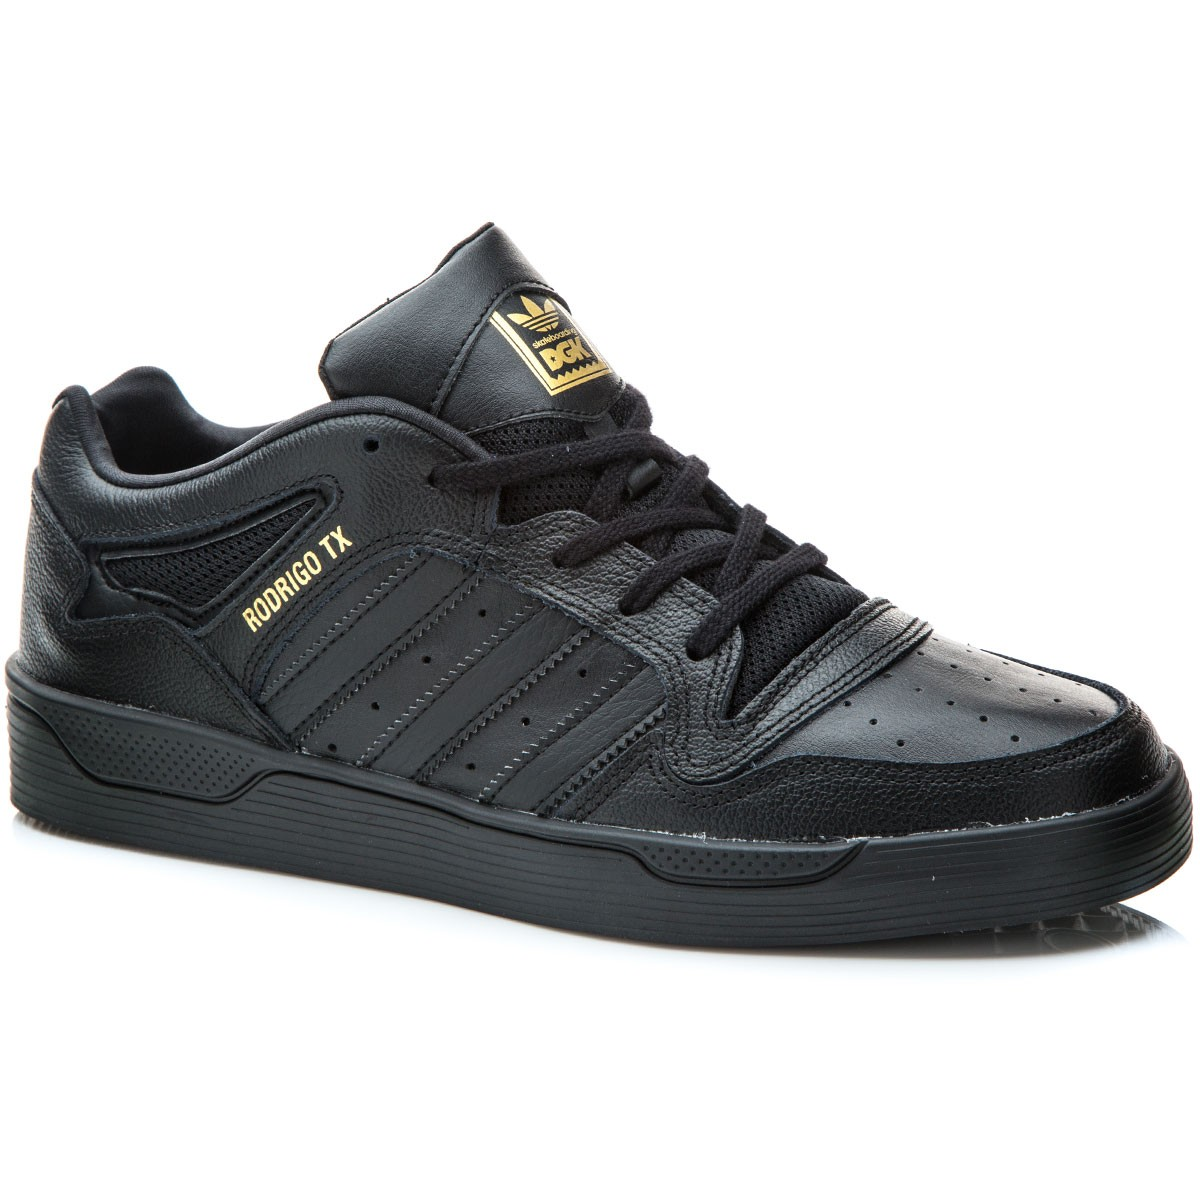 Adidas X DGK Locator Shoes - Black/Black/Gold Metallic